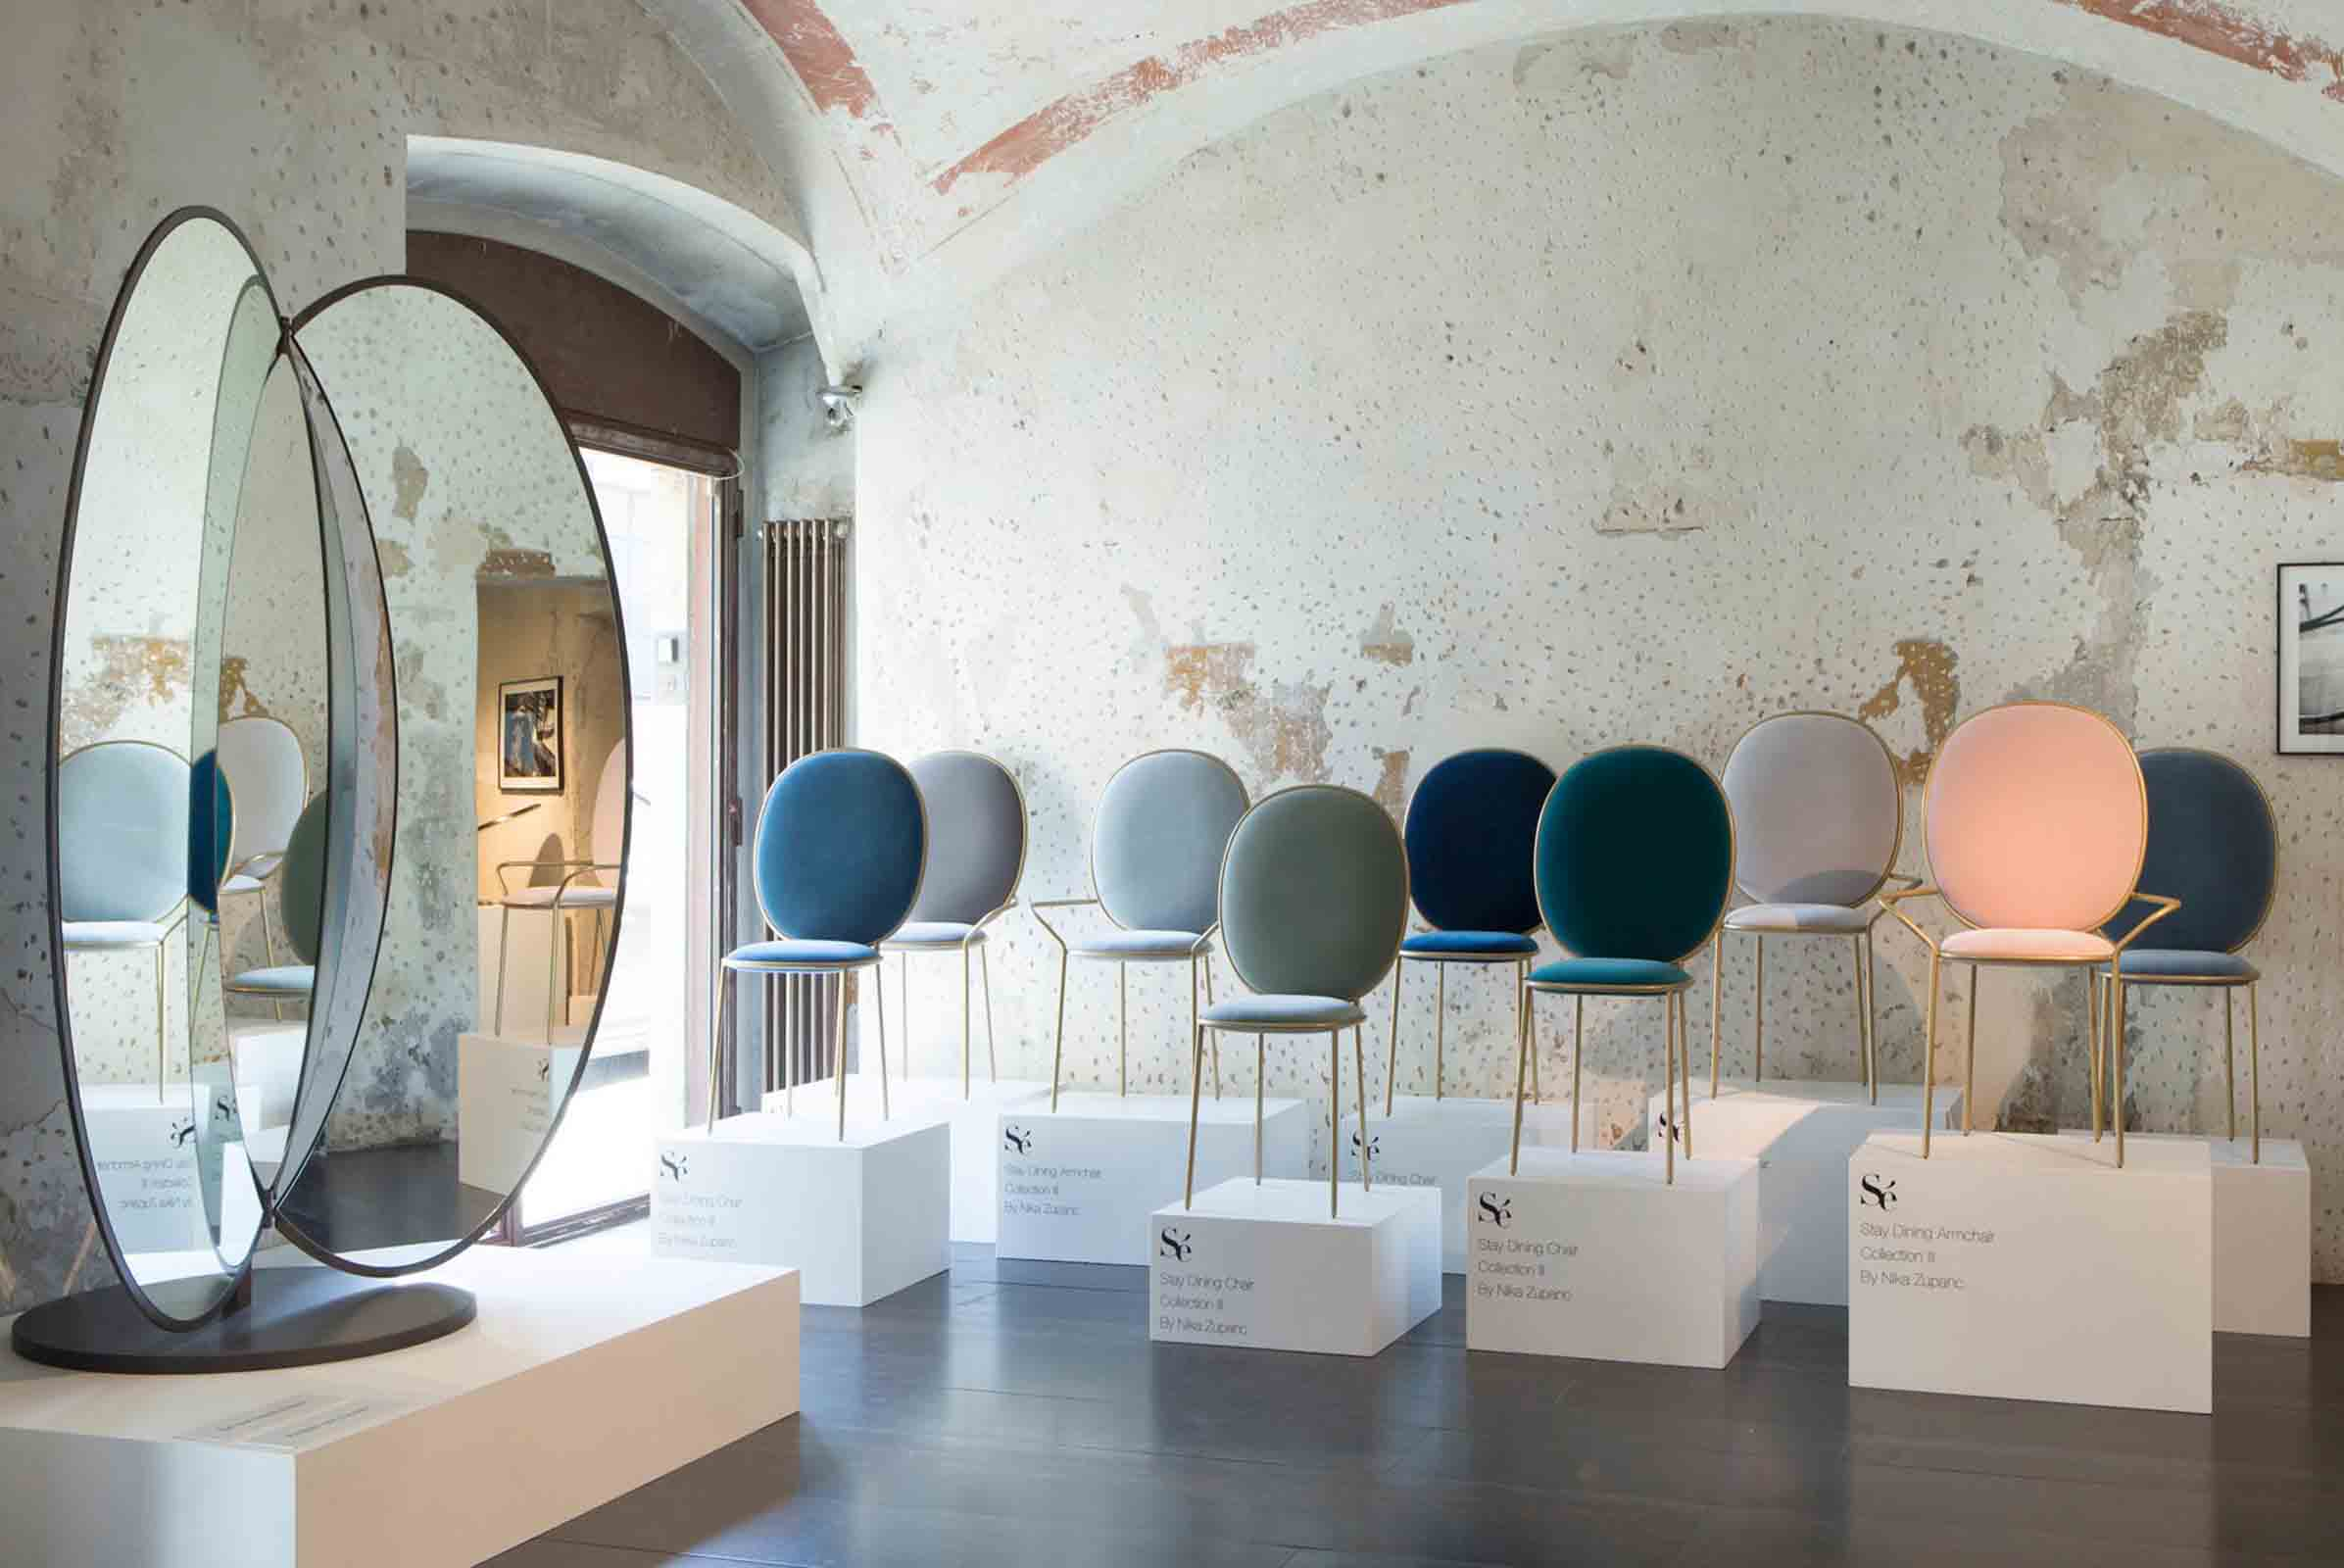 'Stay' chairs and Dressing mirror from Collection III designed by Nika Zupanc for Sé on display at Spazio Rossana Orlandi